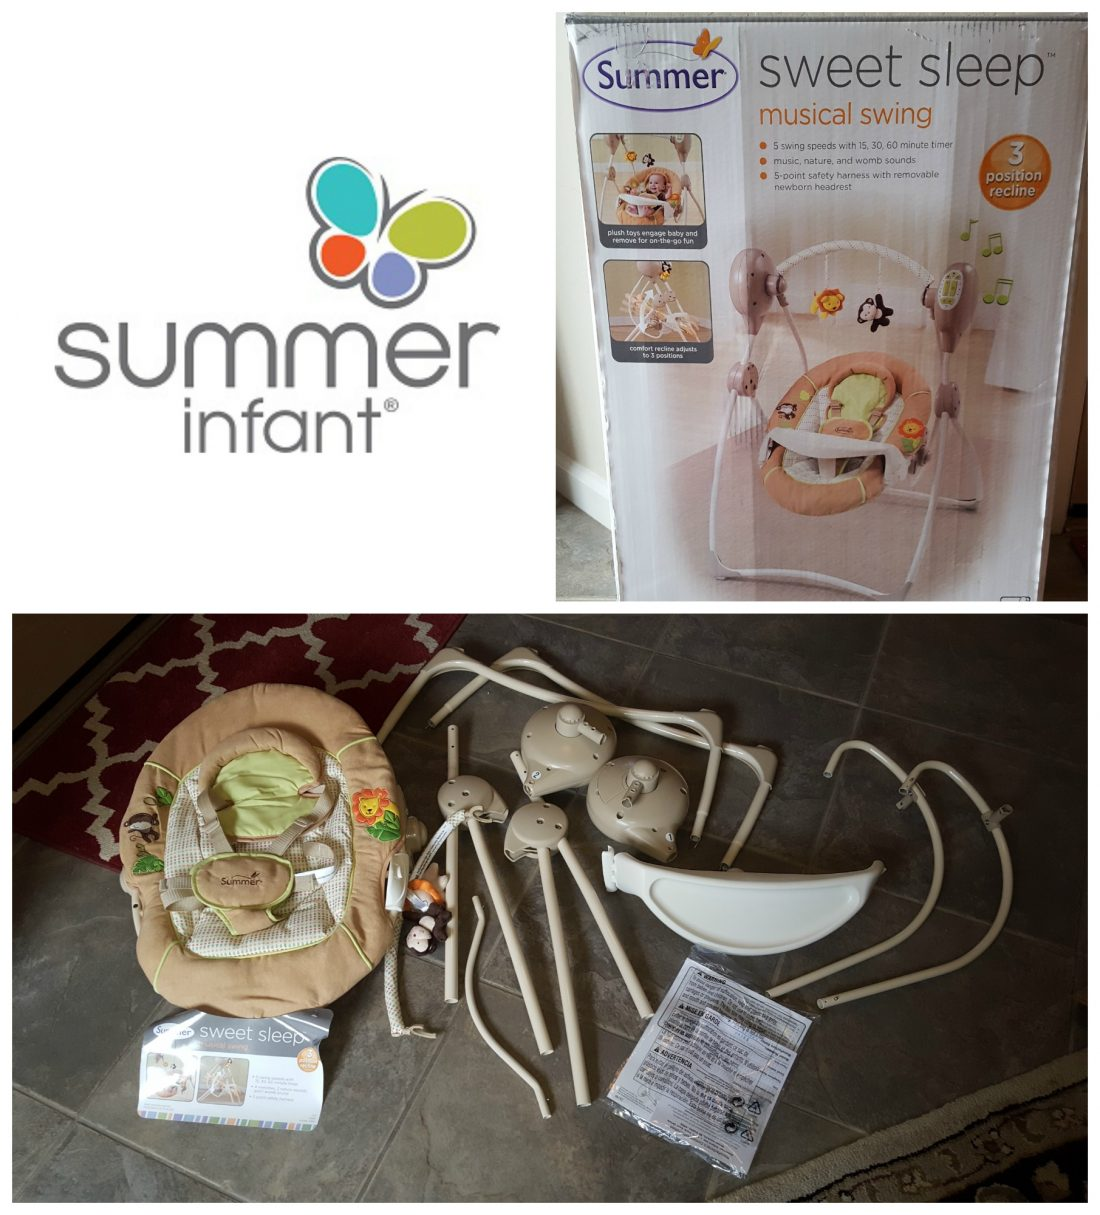 New Must Have Baby Items From Summer Infant! + Sweet Sleep Musical